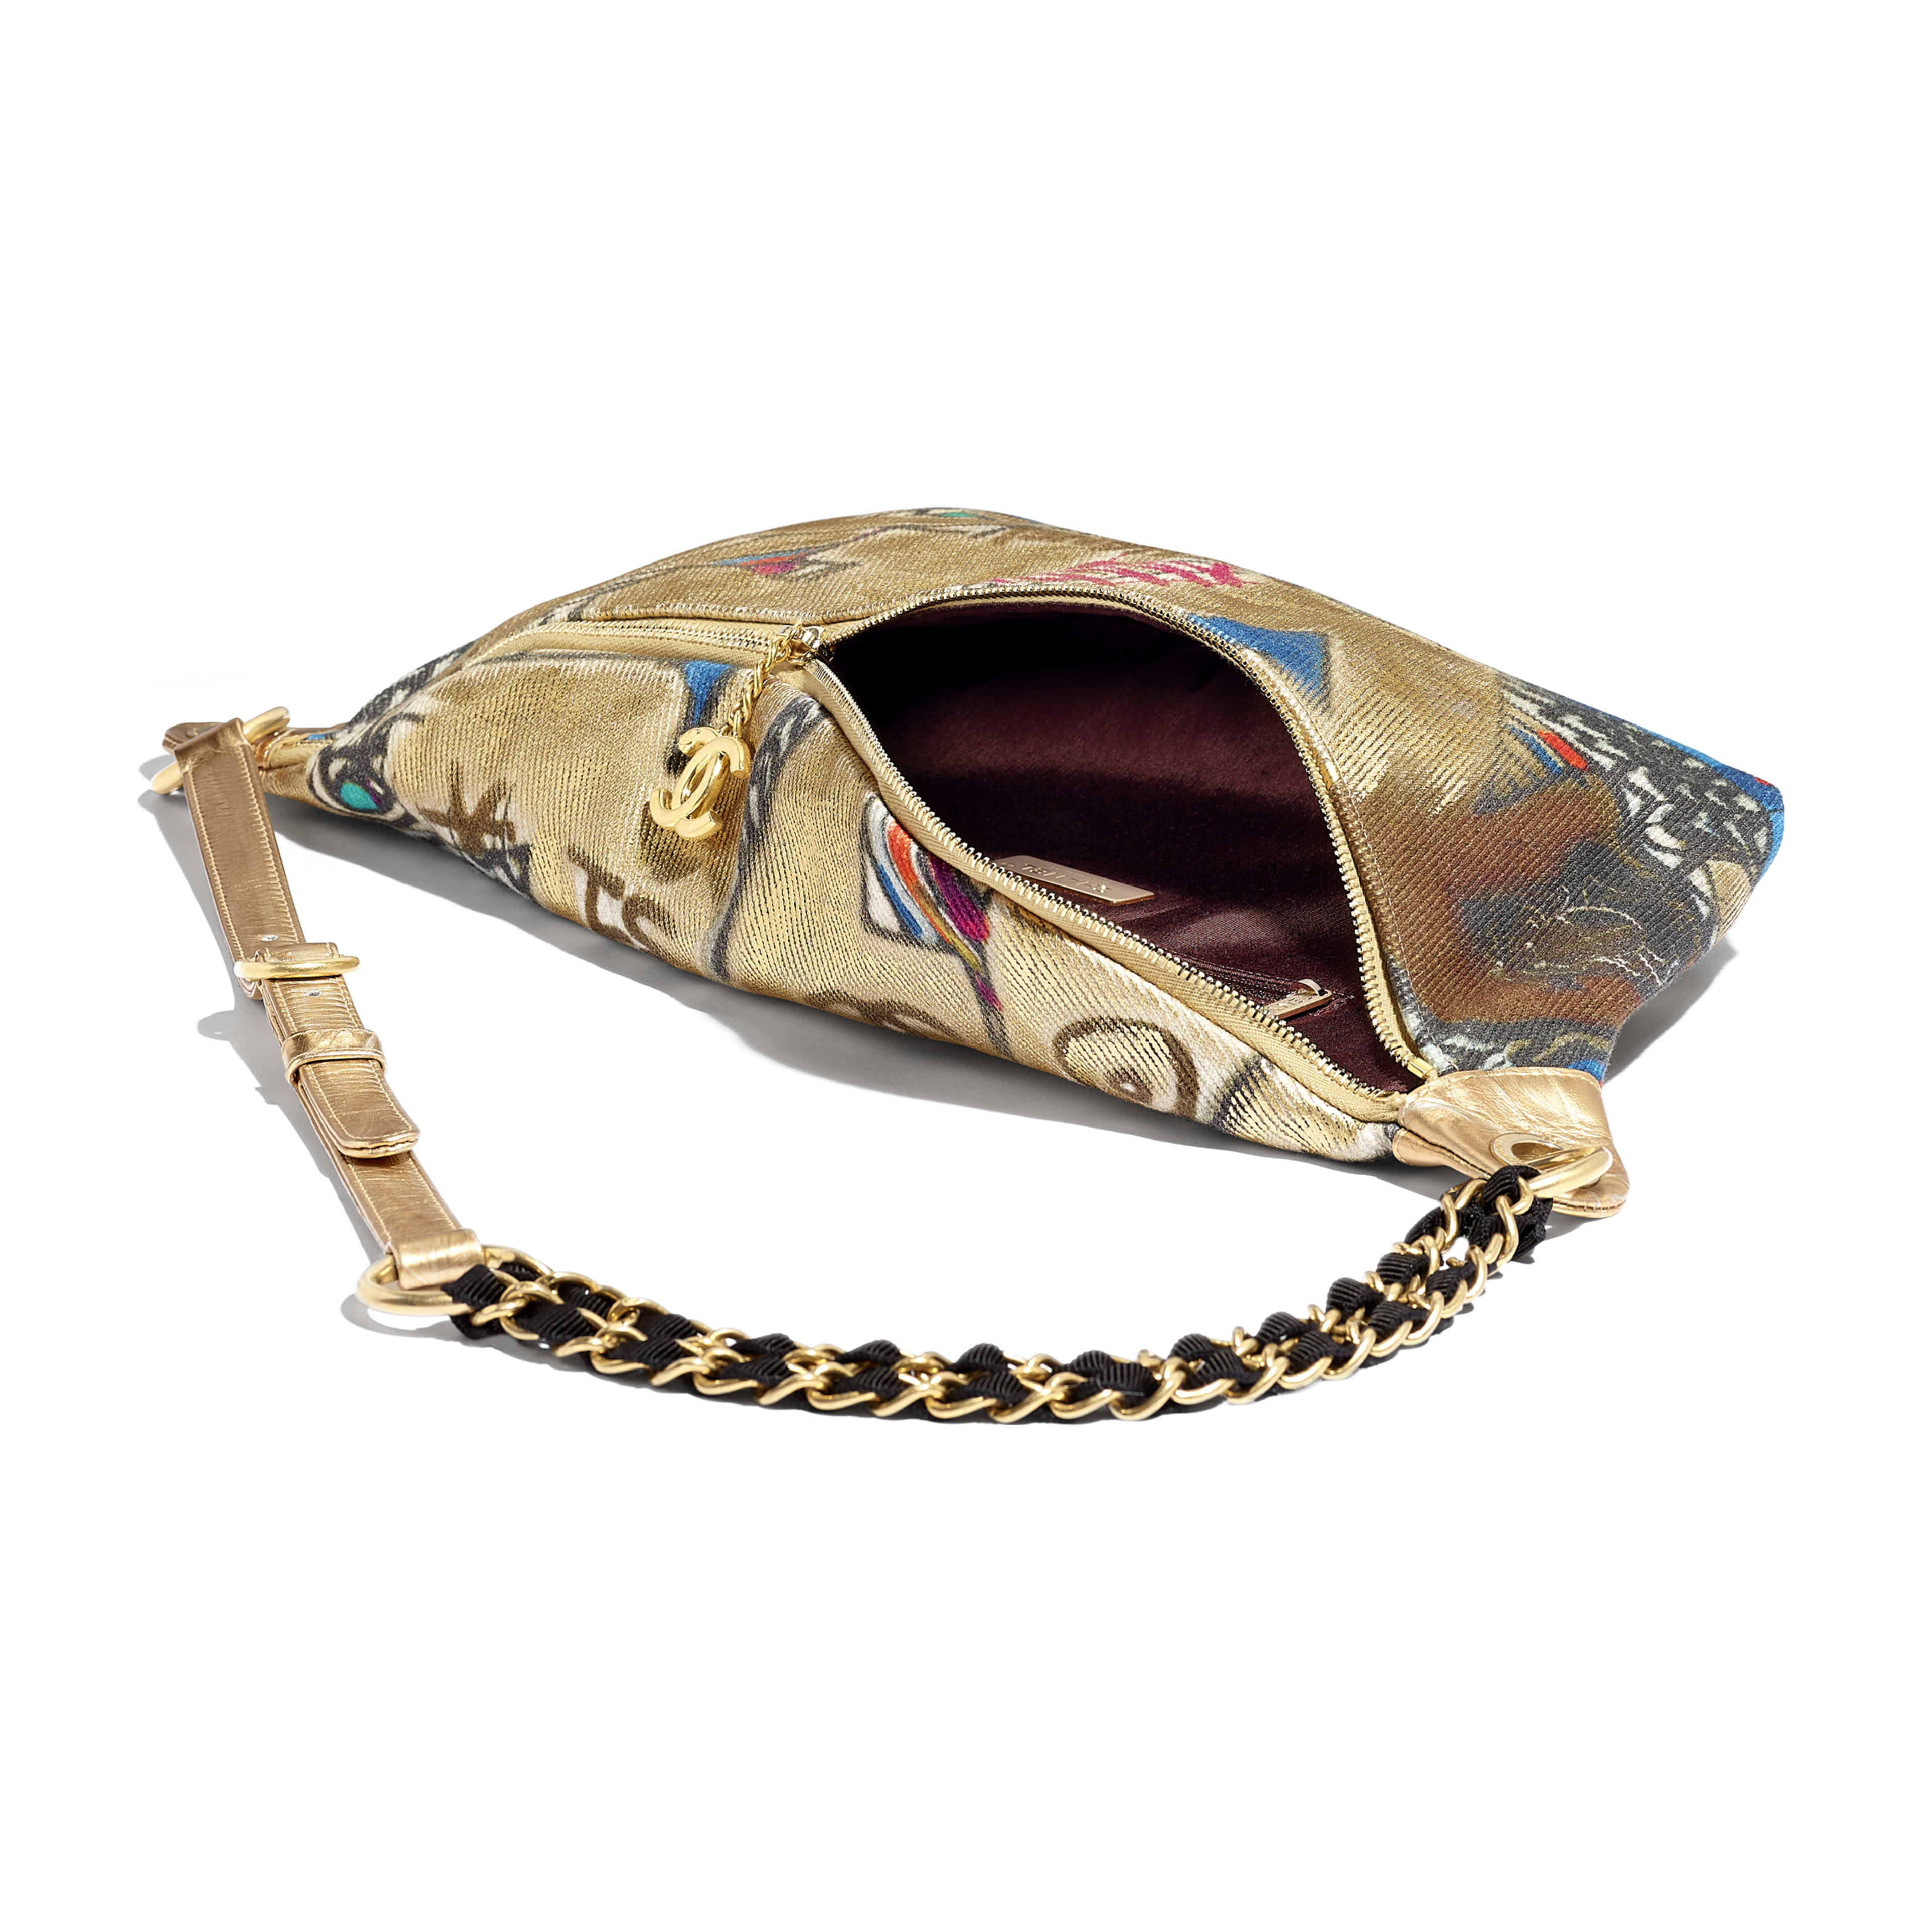 Waist Bag - Multicolor - Calfskin, Cotton & Gold-Tone Metal - Other view - see full sized version